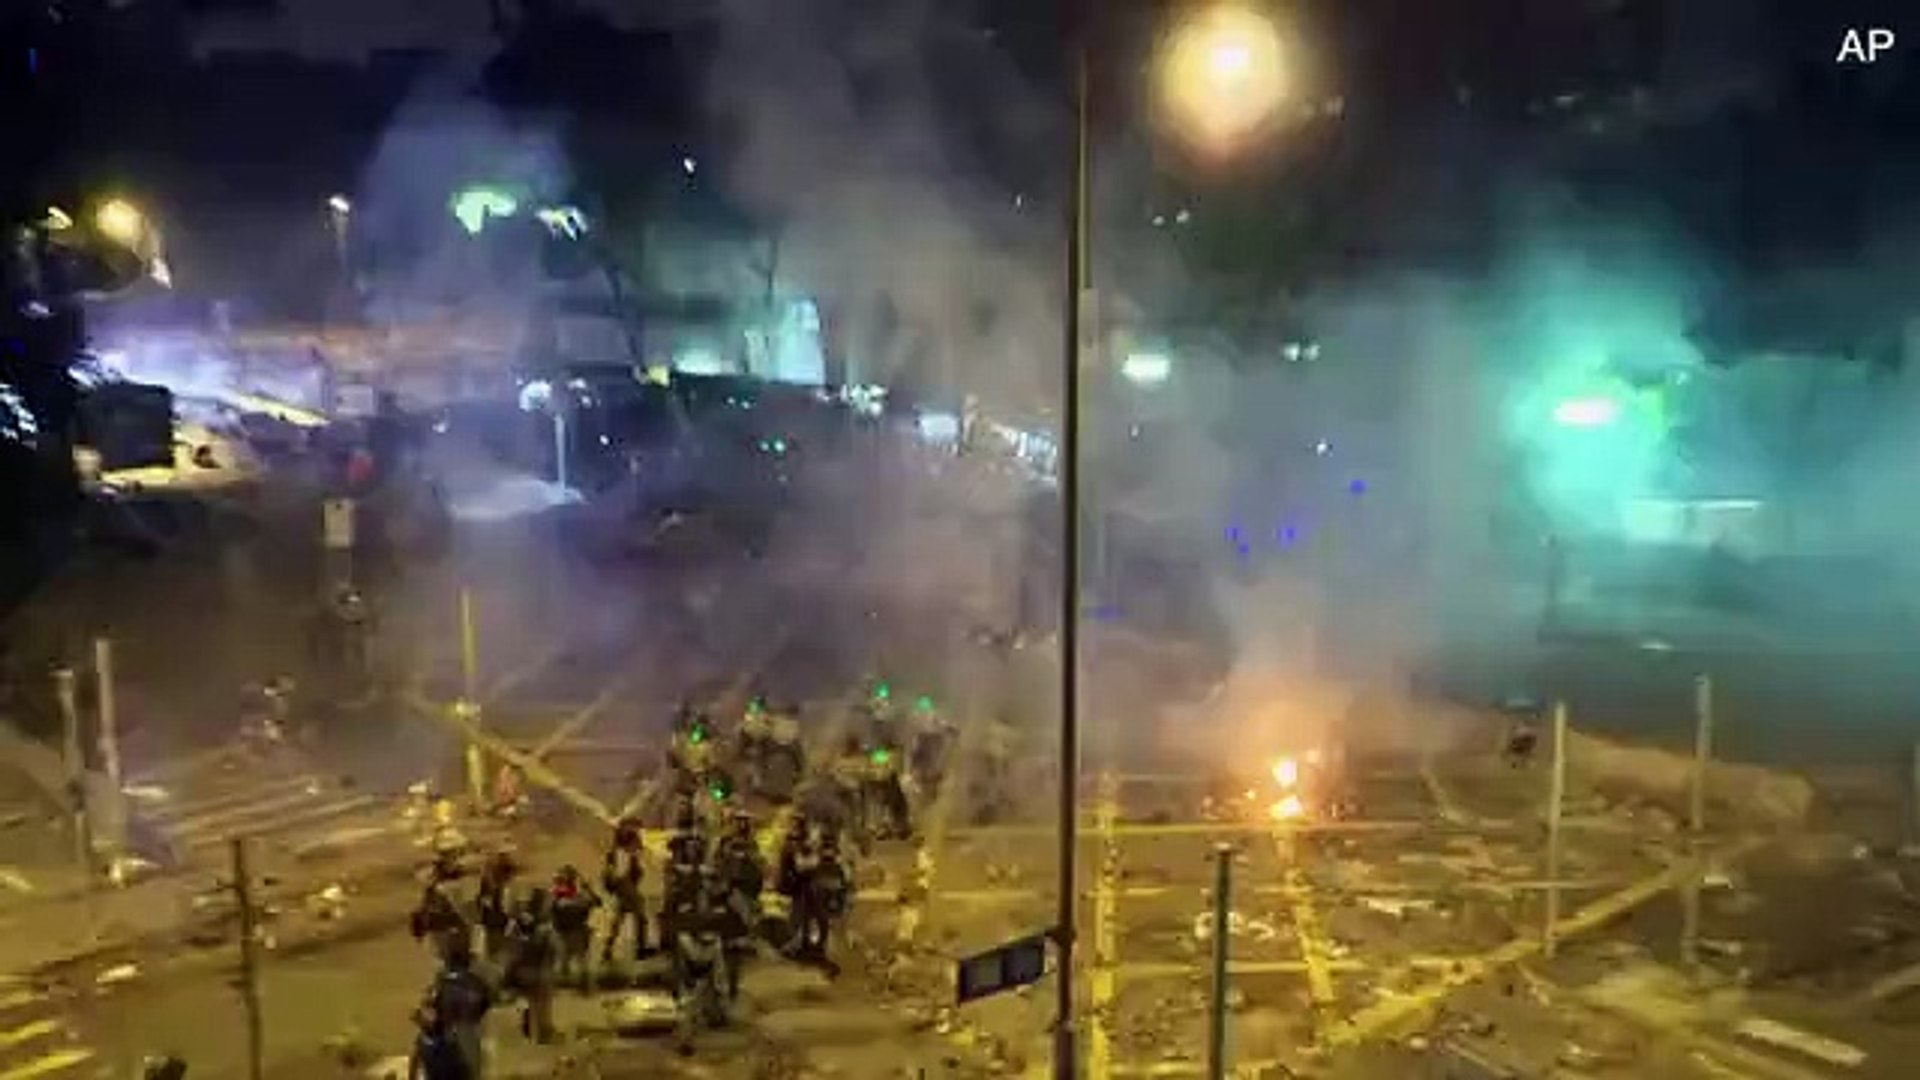 Fiery explosions and fighting as Hong Kong police storm university